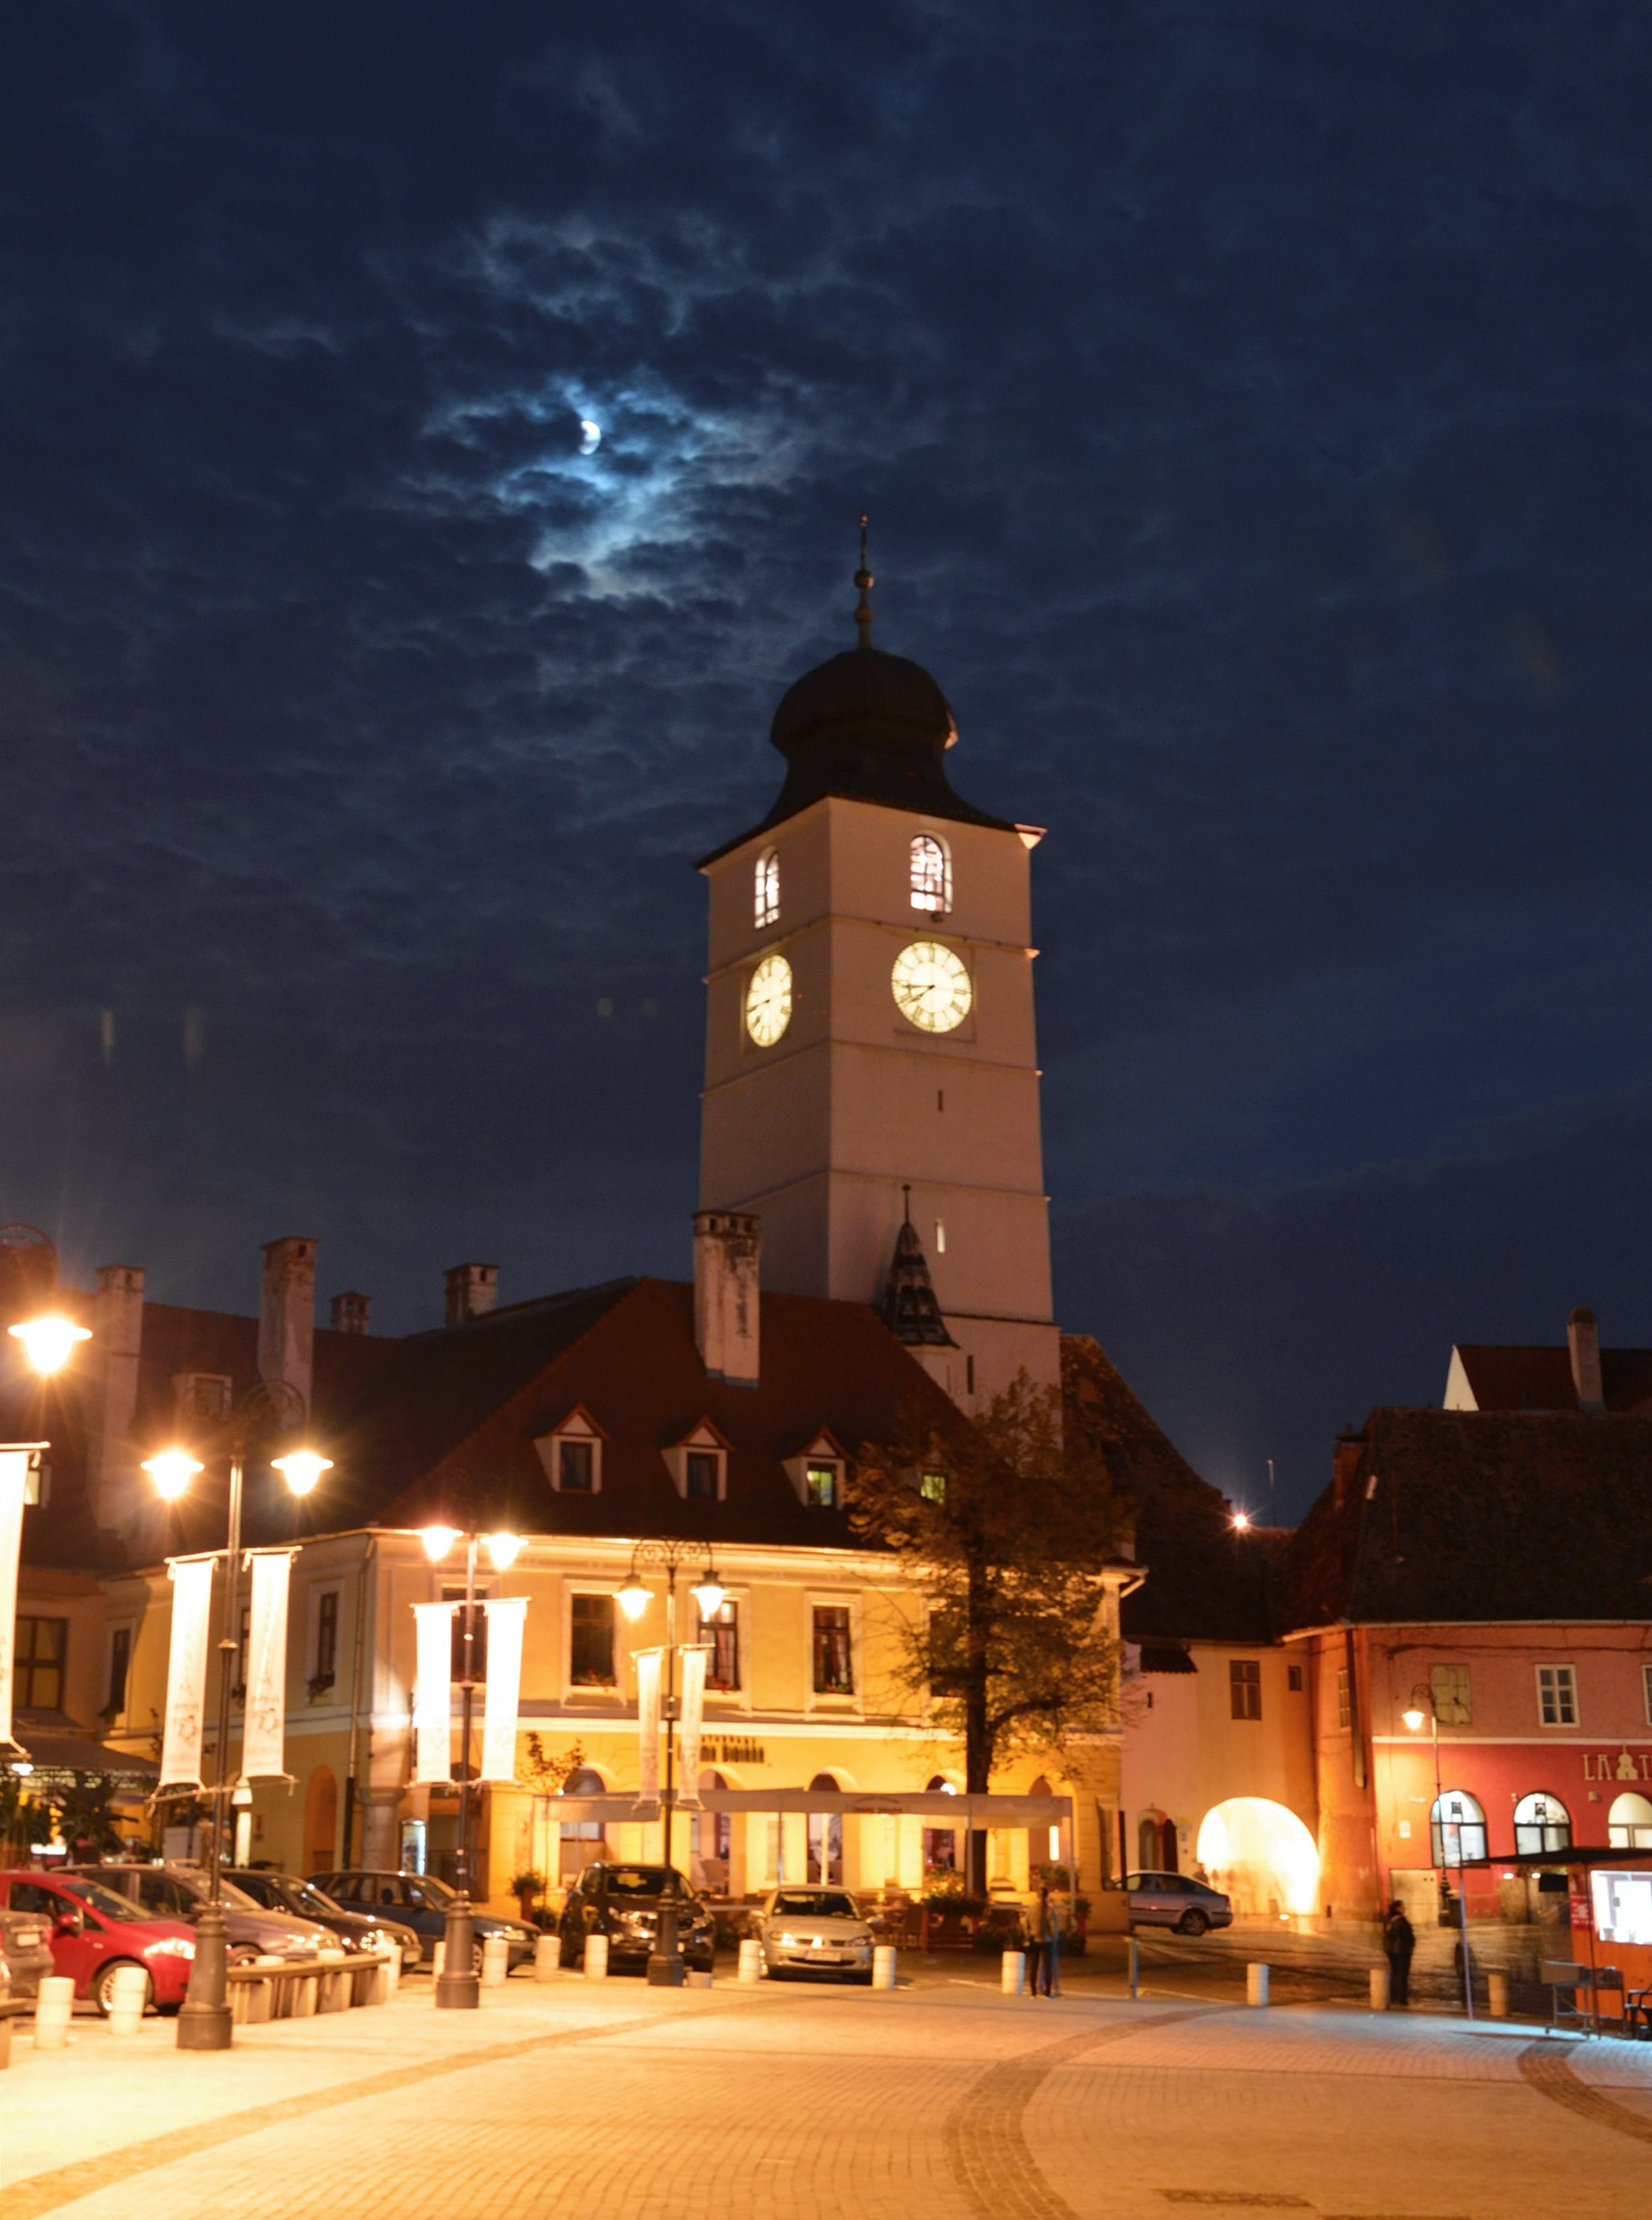 Free stock photo of ciry, clock tower, clouds, lights